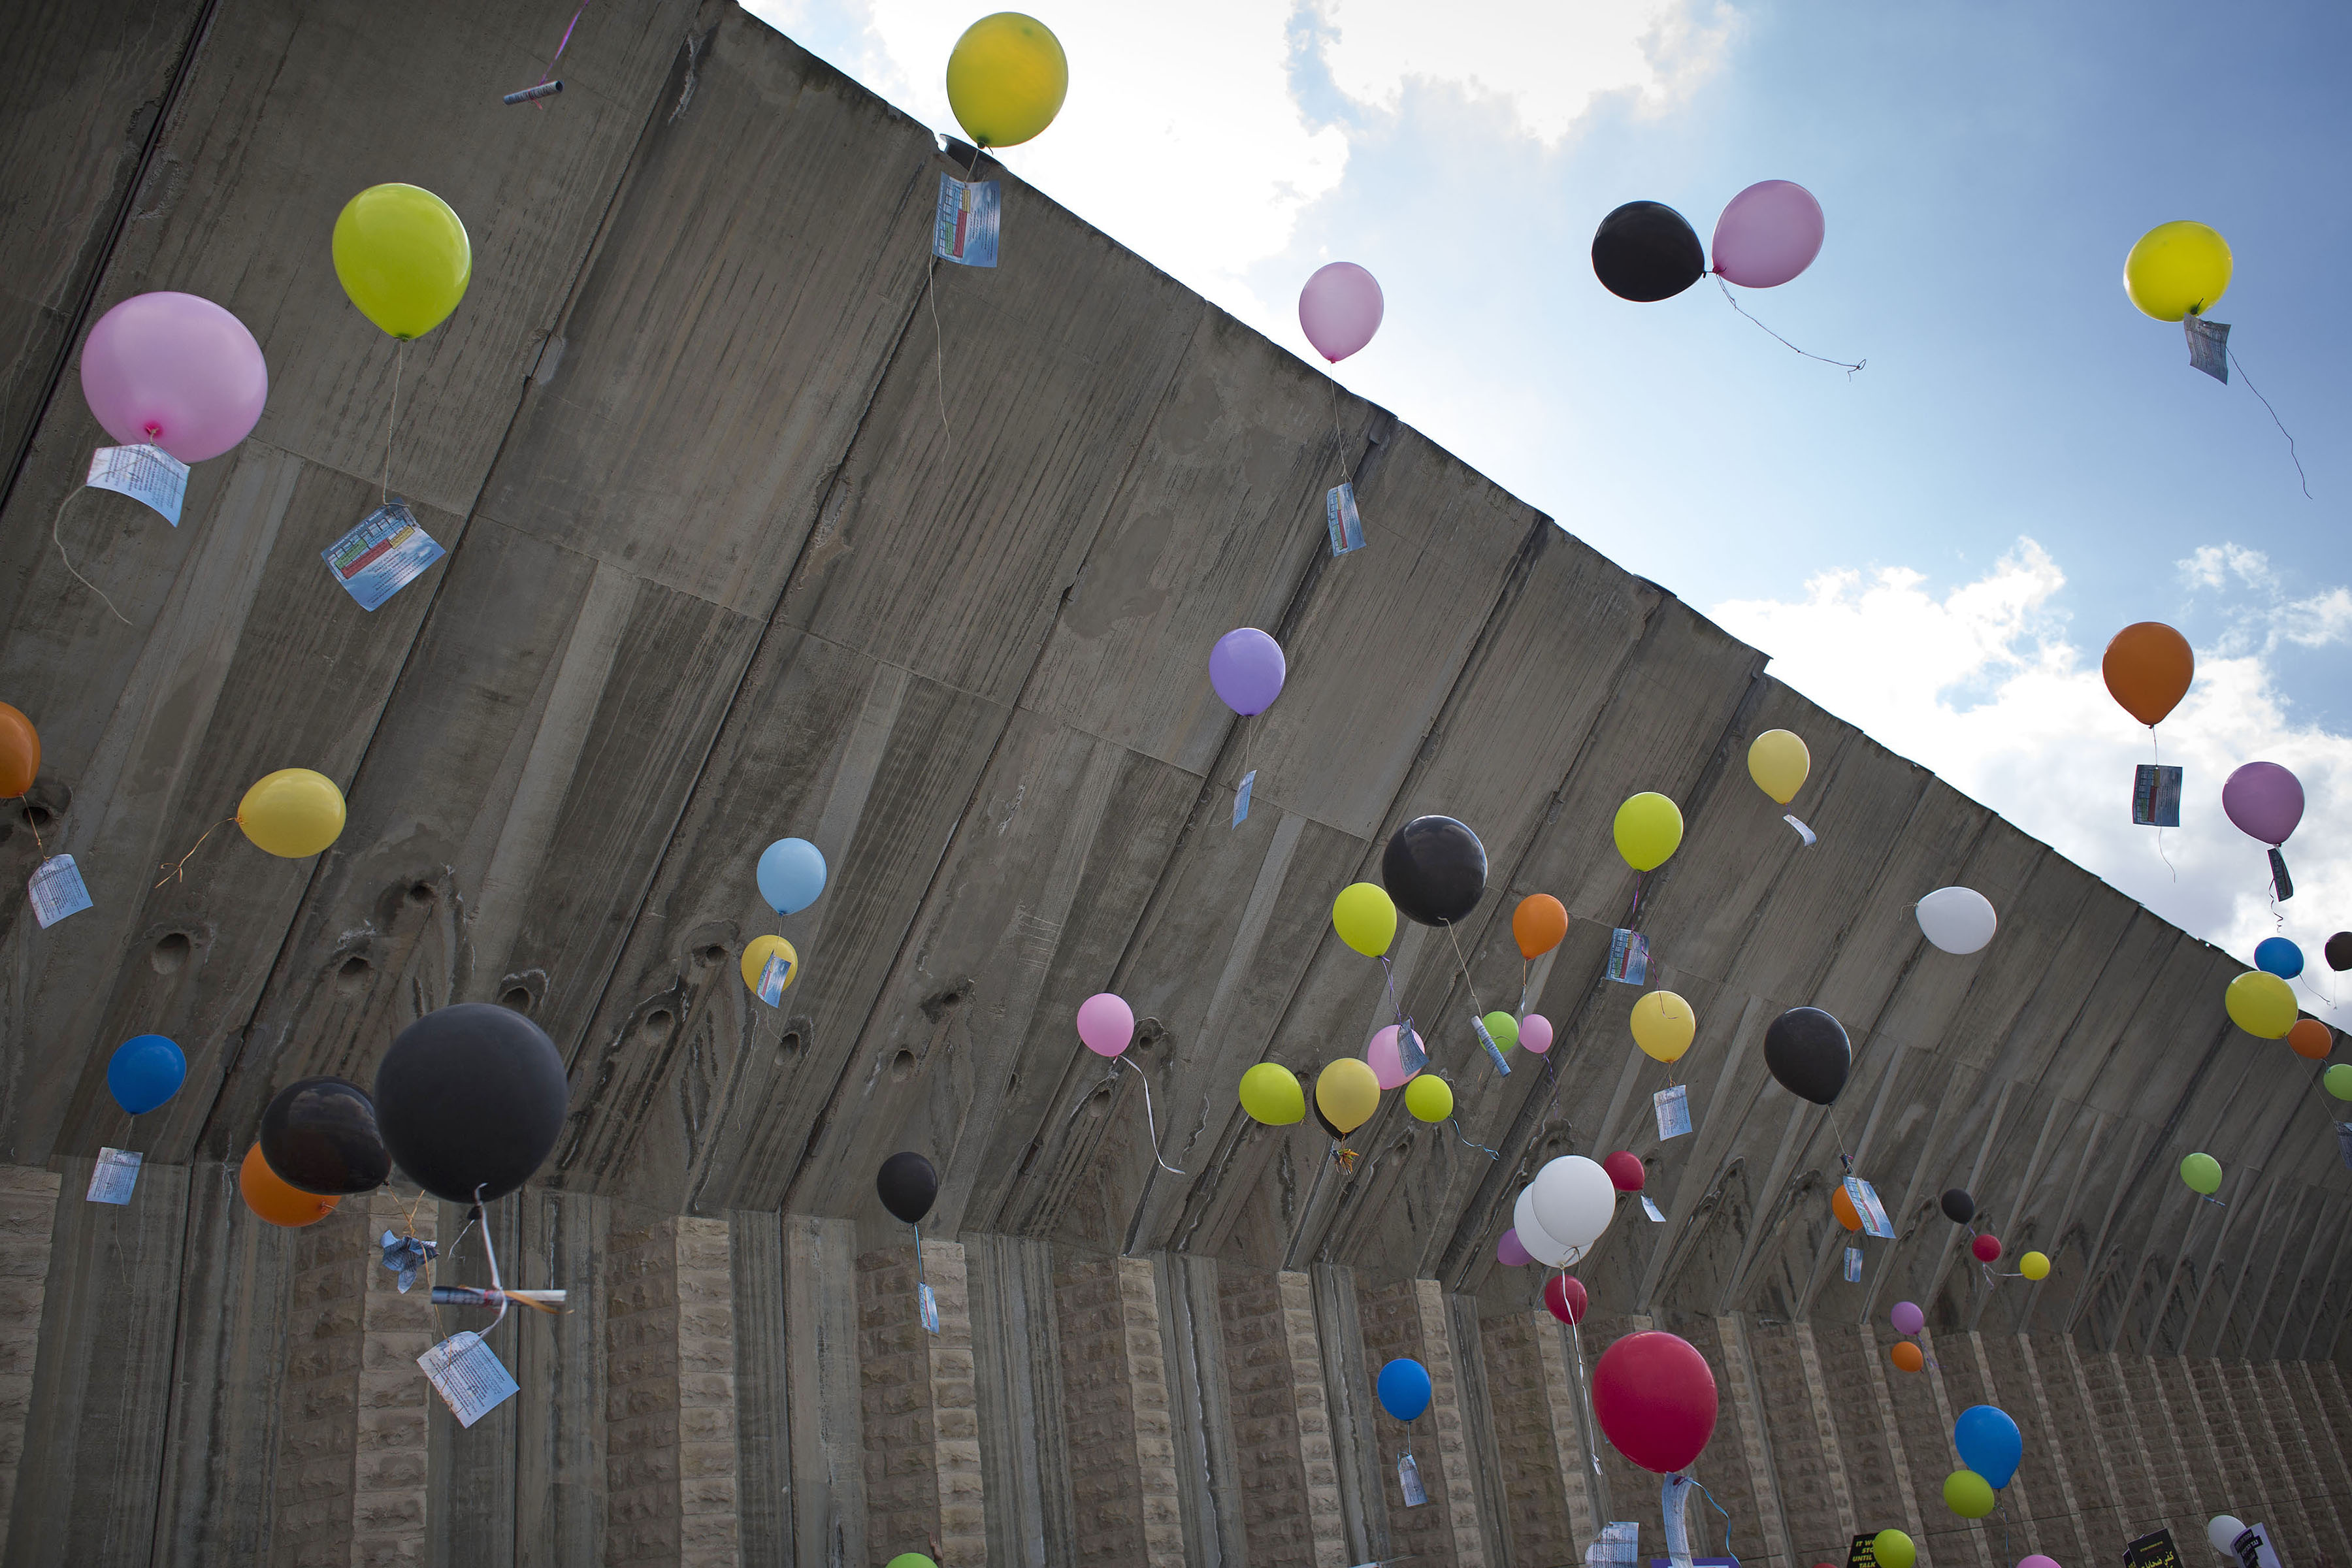 Israelis and Palestinians activists let go balloons along the Israeli separation wall during a march along the major Hebron-Jerusalem highway 60 in the southern West Bank to mark the international women's day and demanding an end to the occupation, Beit Jala, West Bank, March 4, 2016. (Photo by Oren Ziv/GroundTruth)